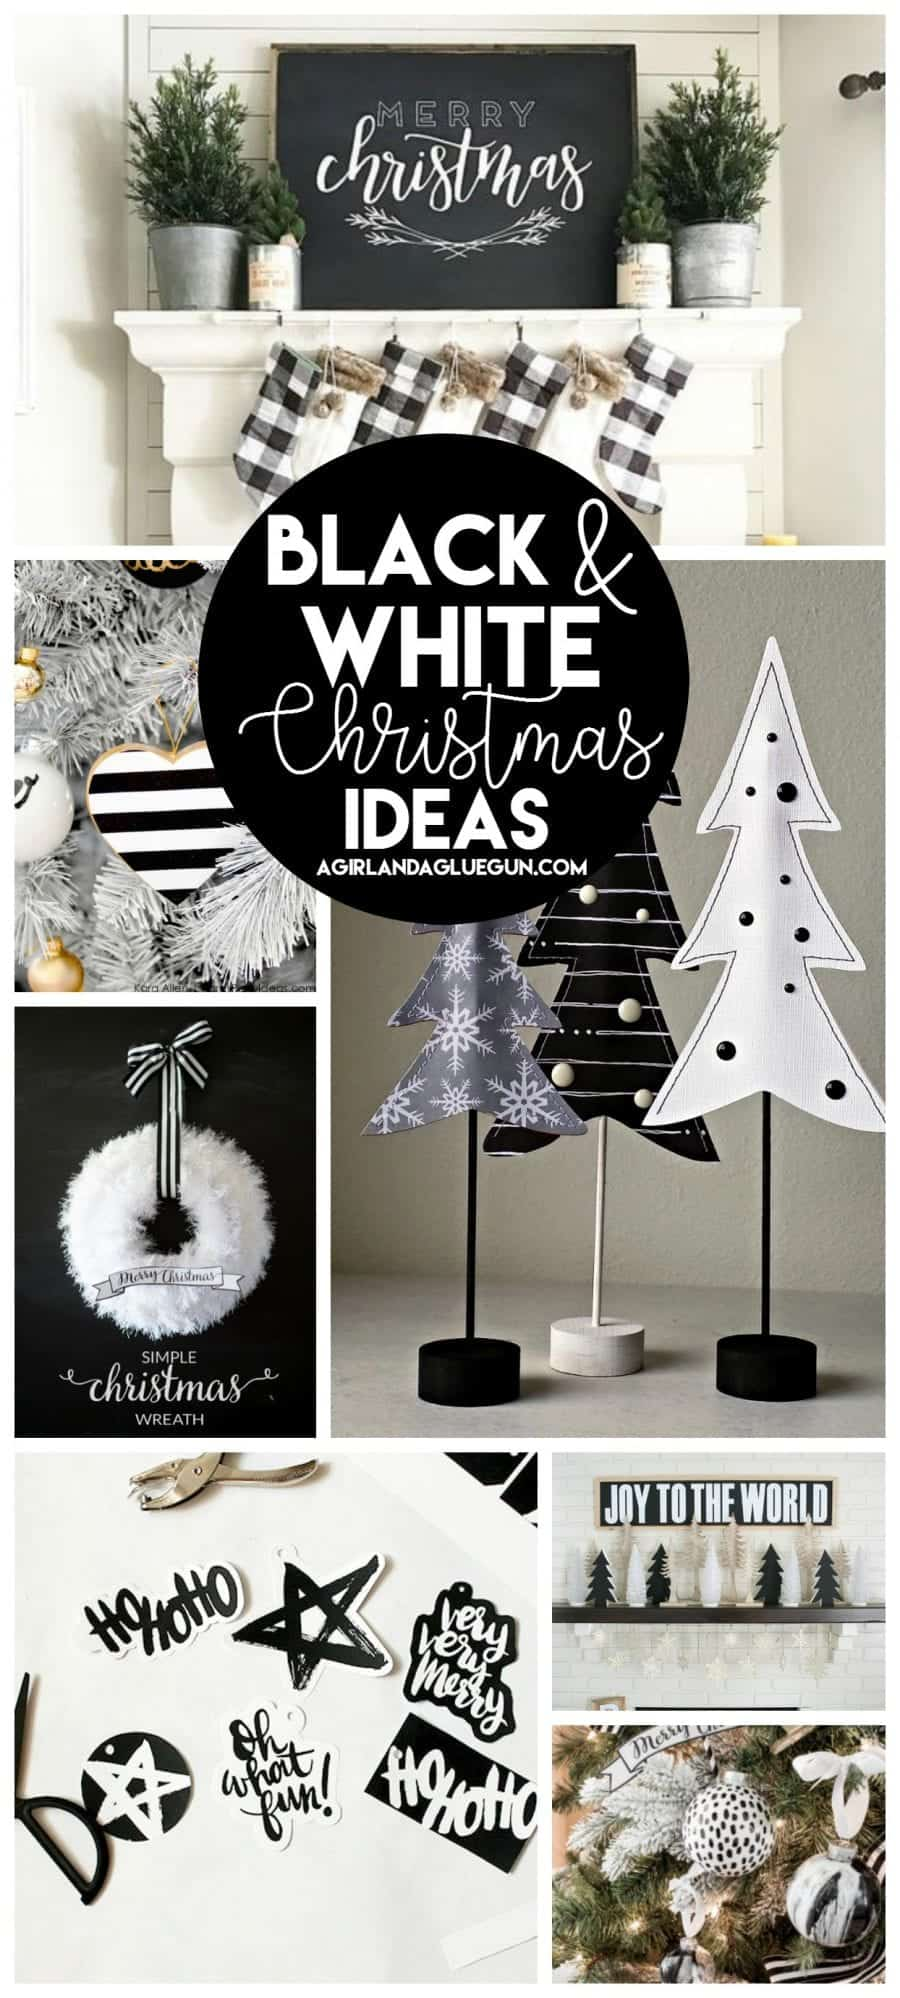 black-and-white-christmas-decoration-ideas-so-many-cute-projects